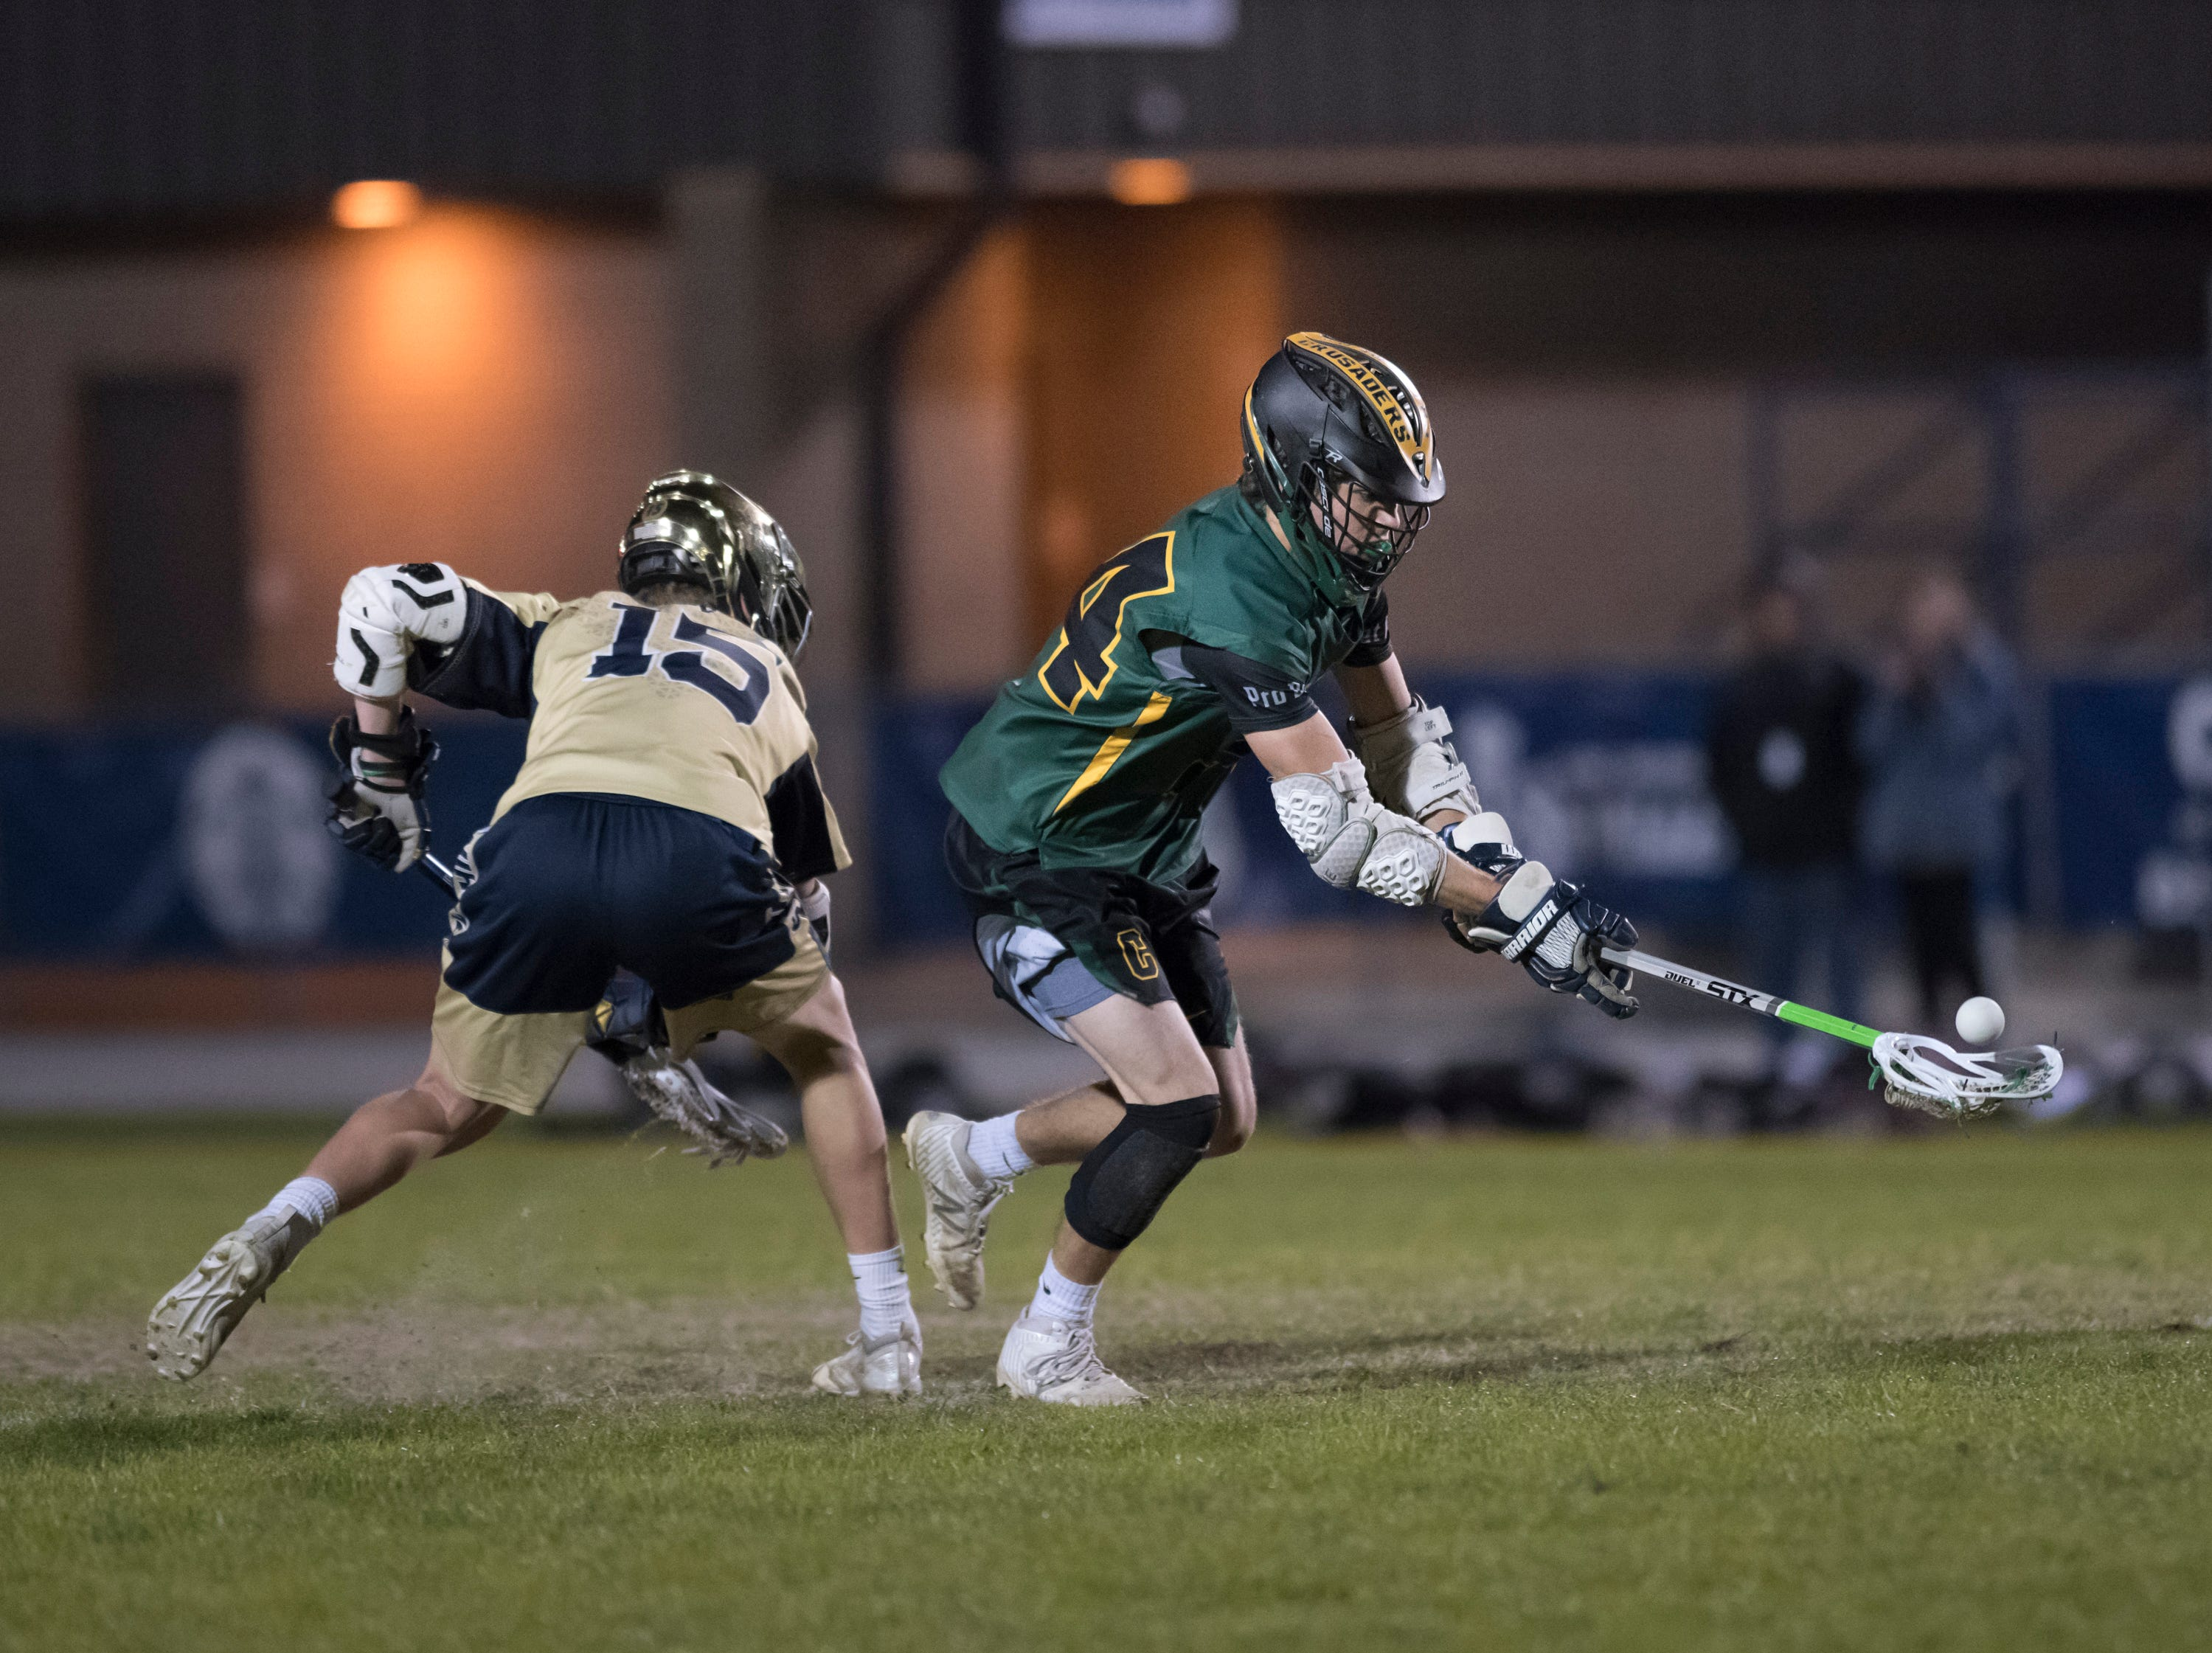 William Butler (24) scoops up the ball on a faceoff during the Catholic vs. Gulf Breeze boys lacrosse game at Gulf Breeze High School on Wednesday, March 6, 2019.